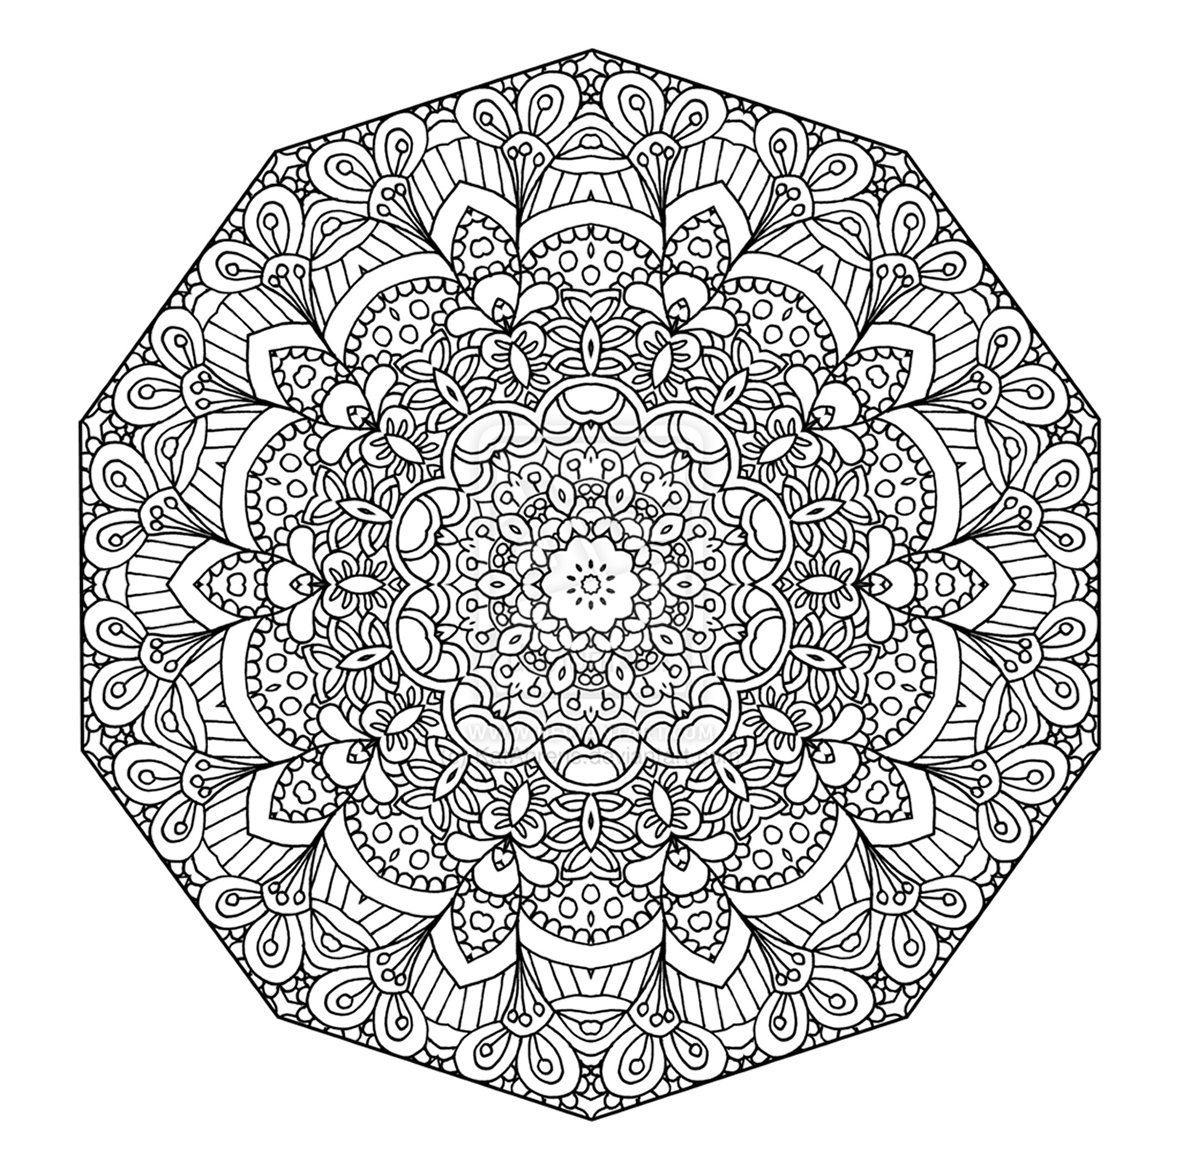 Detailed Coloring Pages For Teenagers | Detailed Abstract à Coloriage De Mandala Difficile A Imprimer